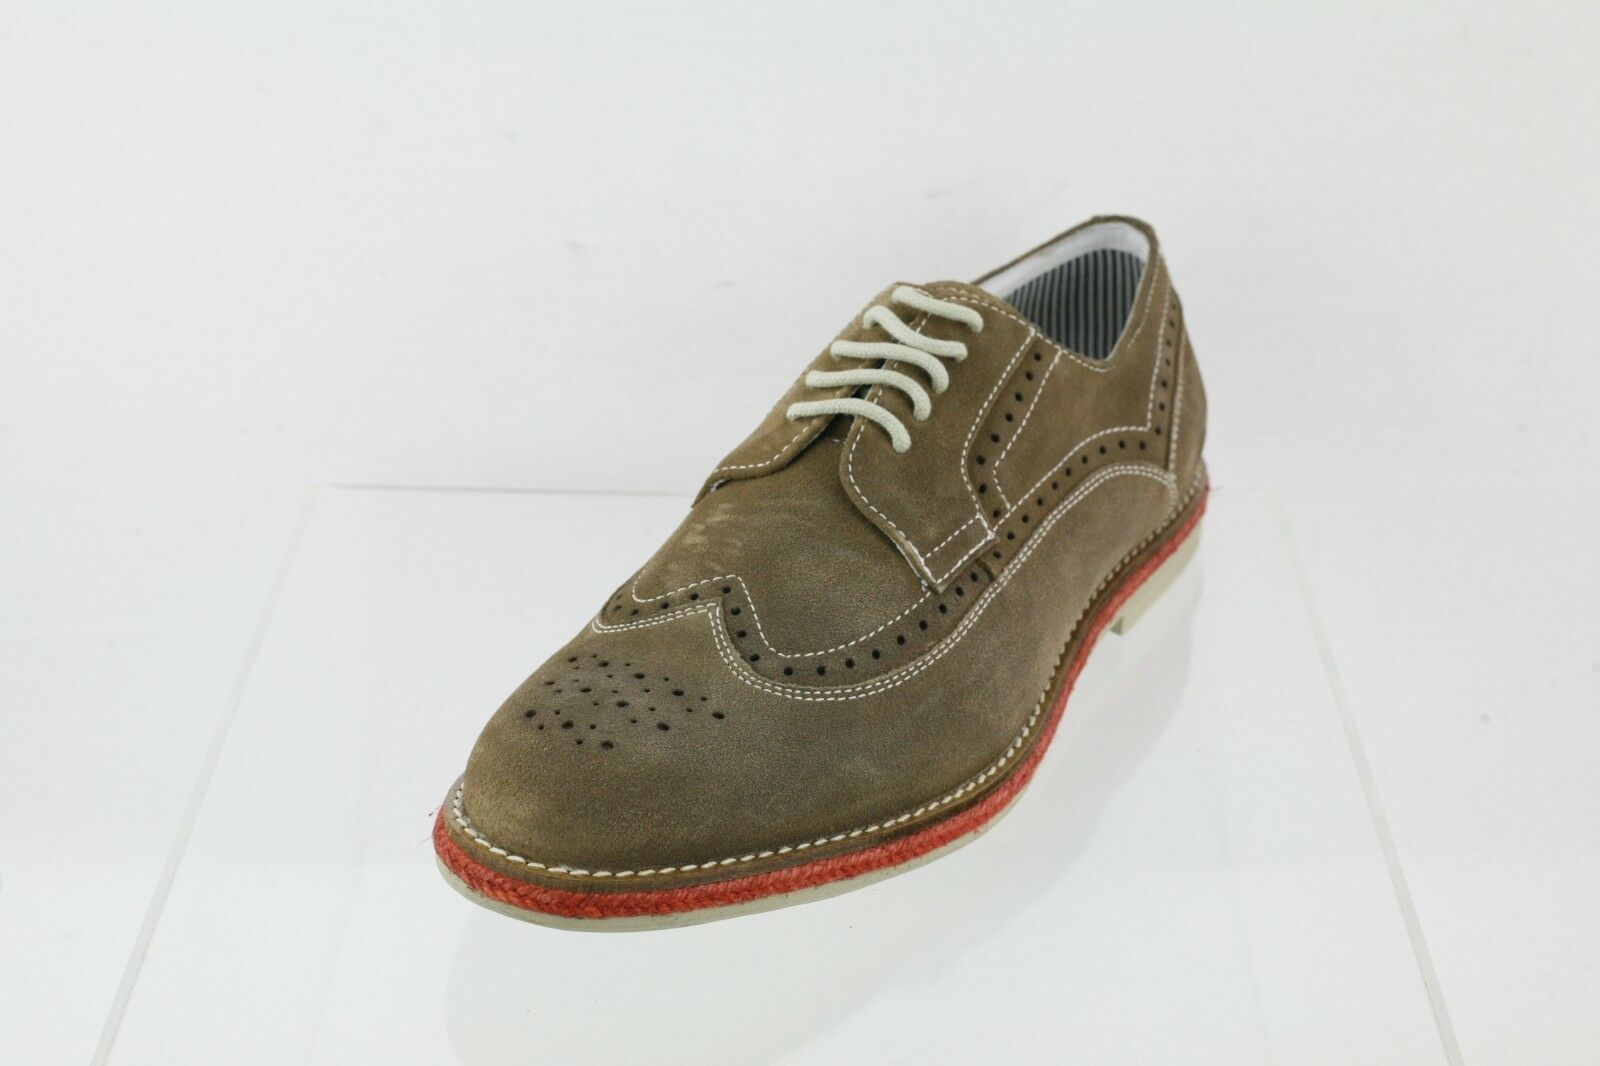 Men's Kenneth Cole Reaction Grow-Ceeds Brown Suede Lace-up Oxfords Size 9 M